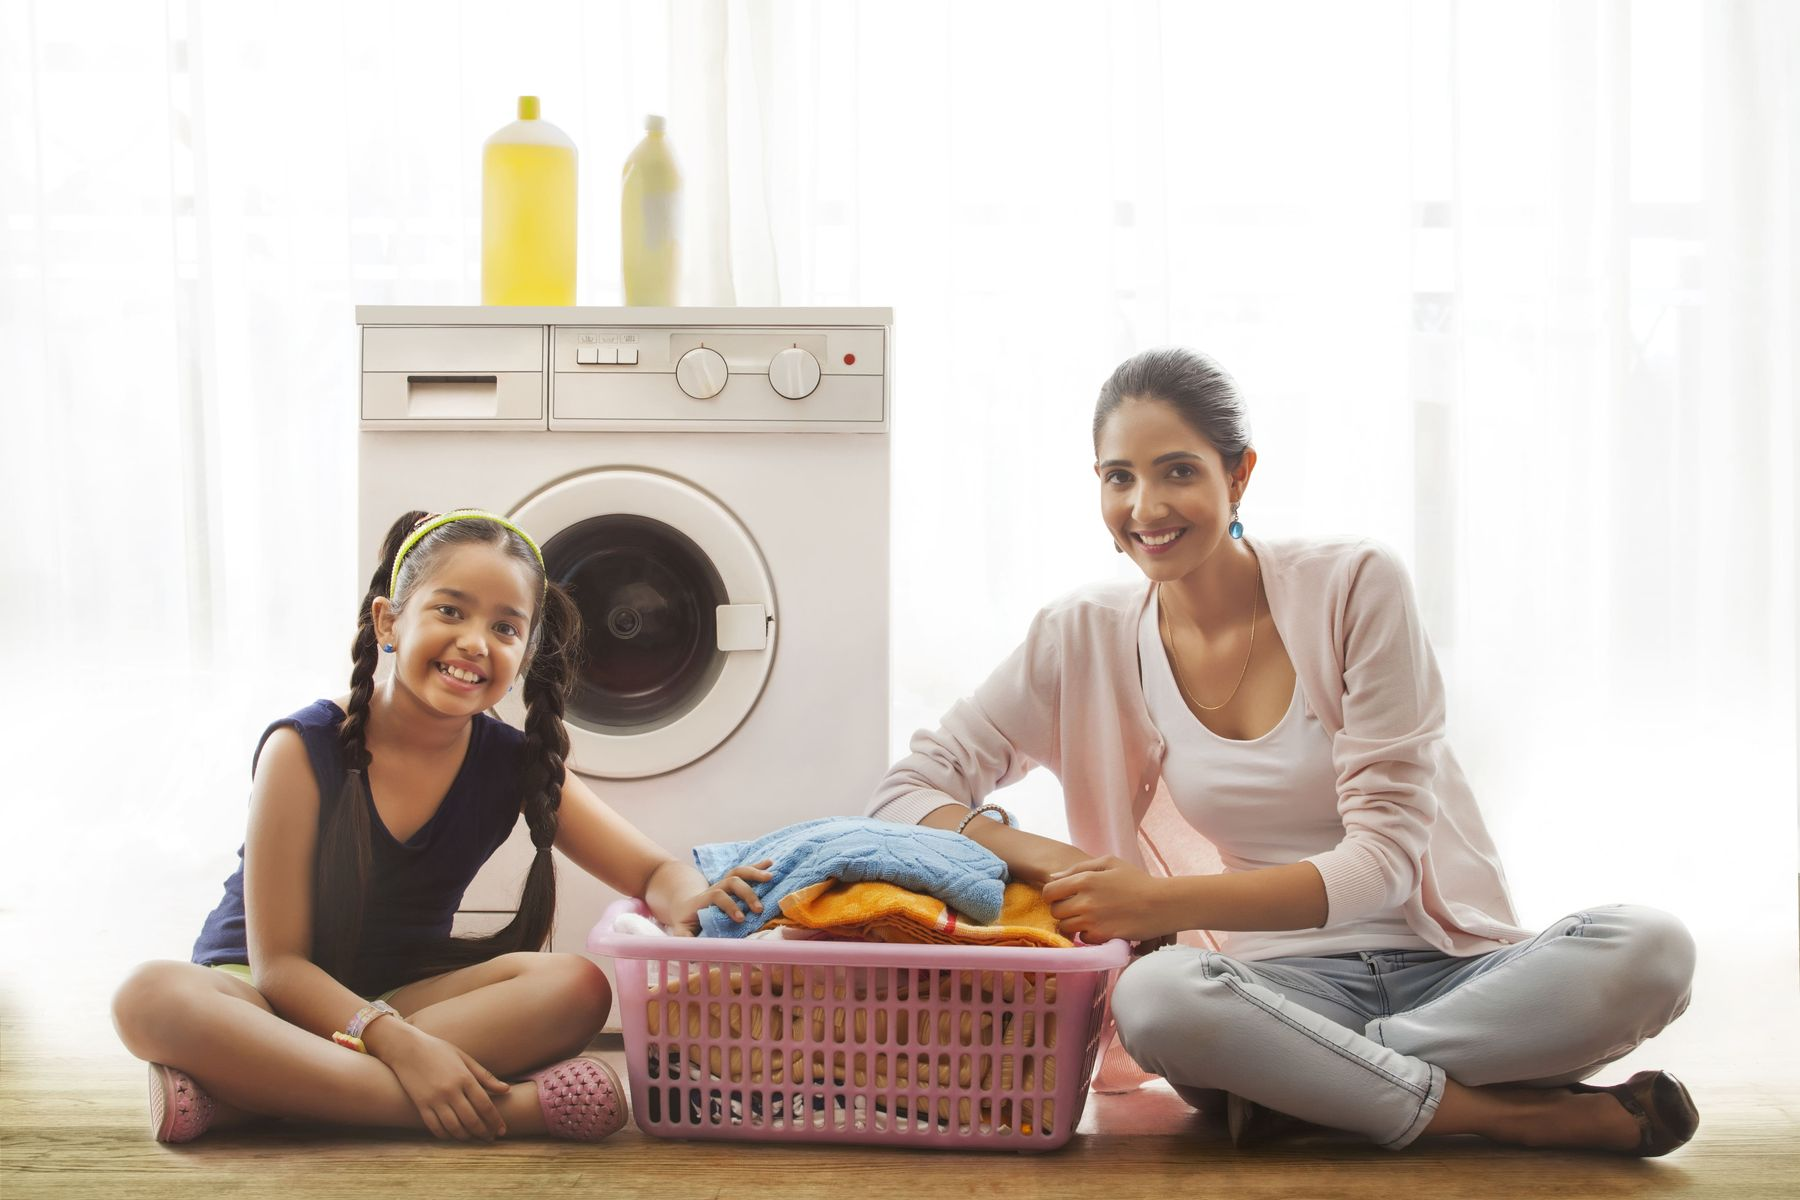 Steps to get kids involved in laundry jobs